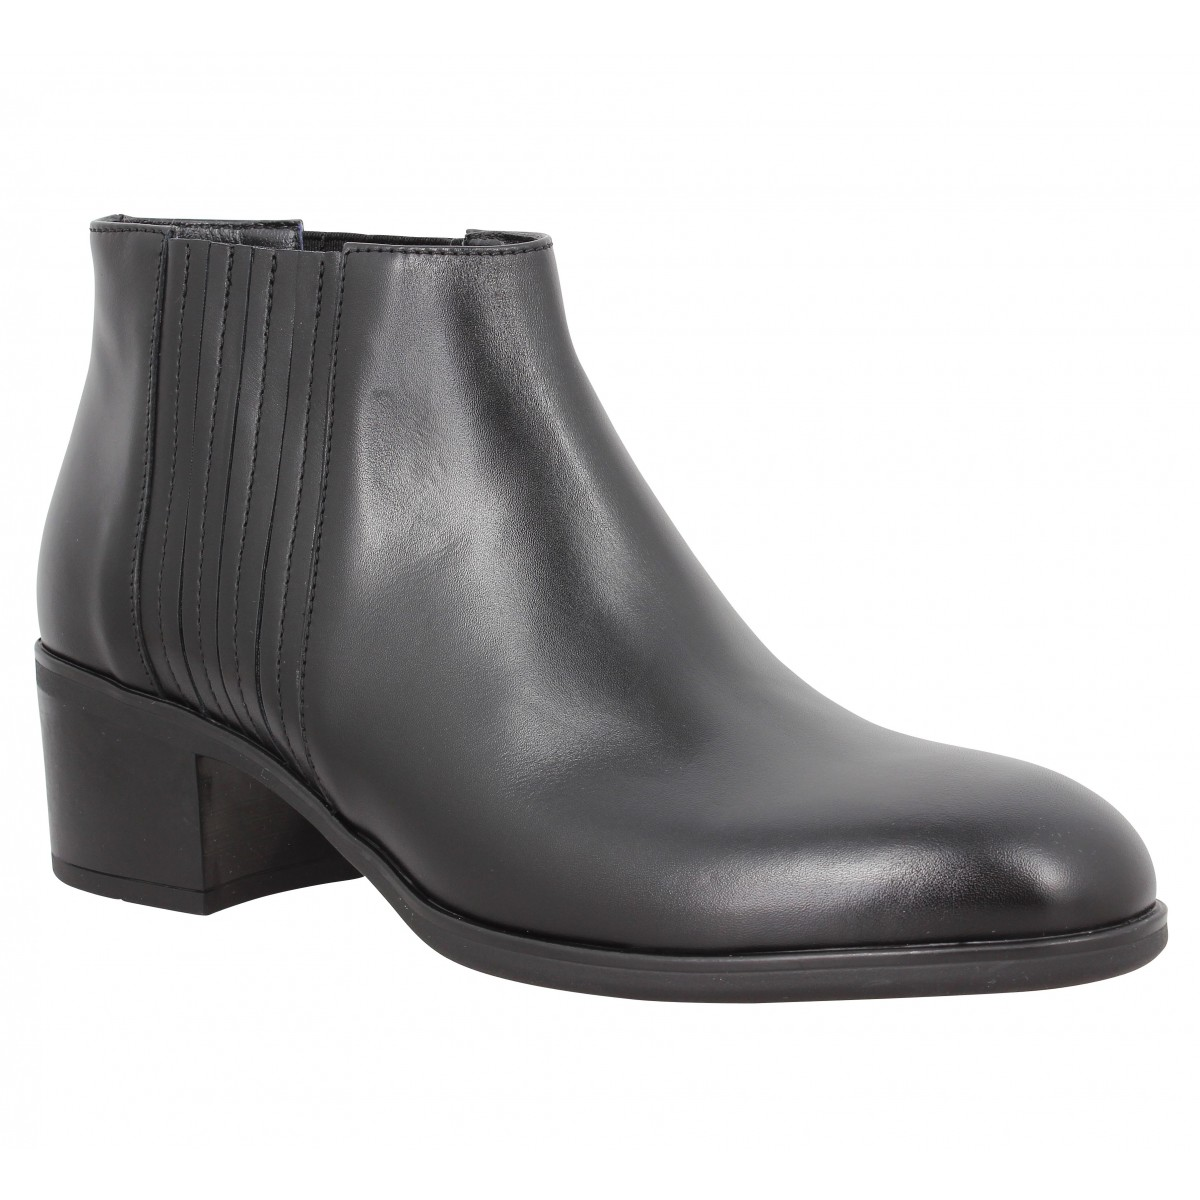 Bottines TRIVER FLIGHT 147 35 cuir Noir